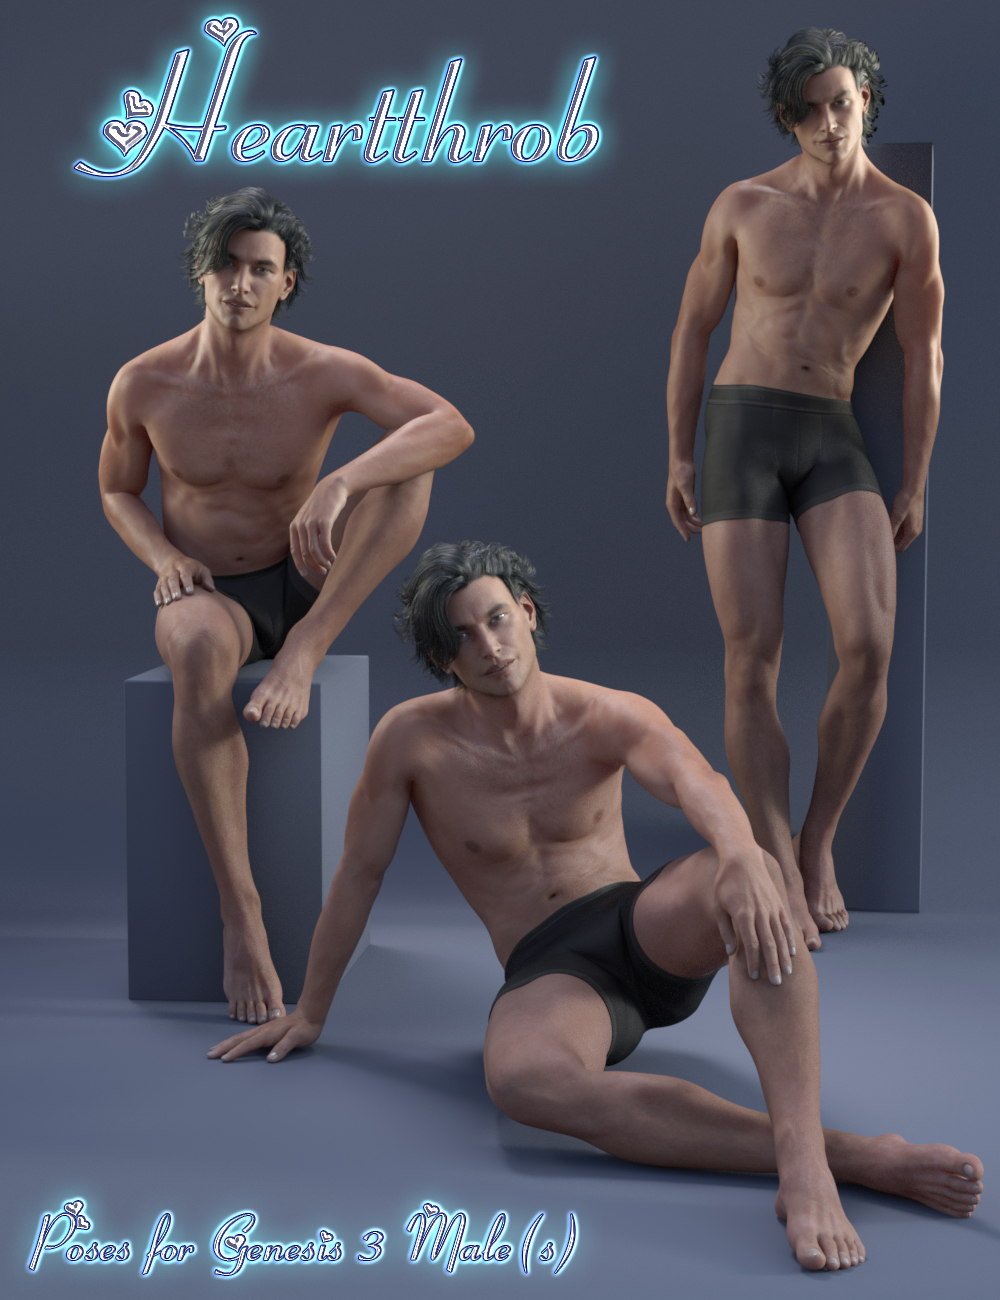 Heartthrob for Genesis 3 Male(s) by: lunchlady, 3D Models by Daz 3D